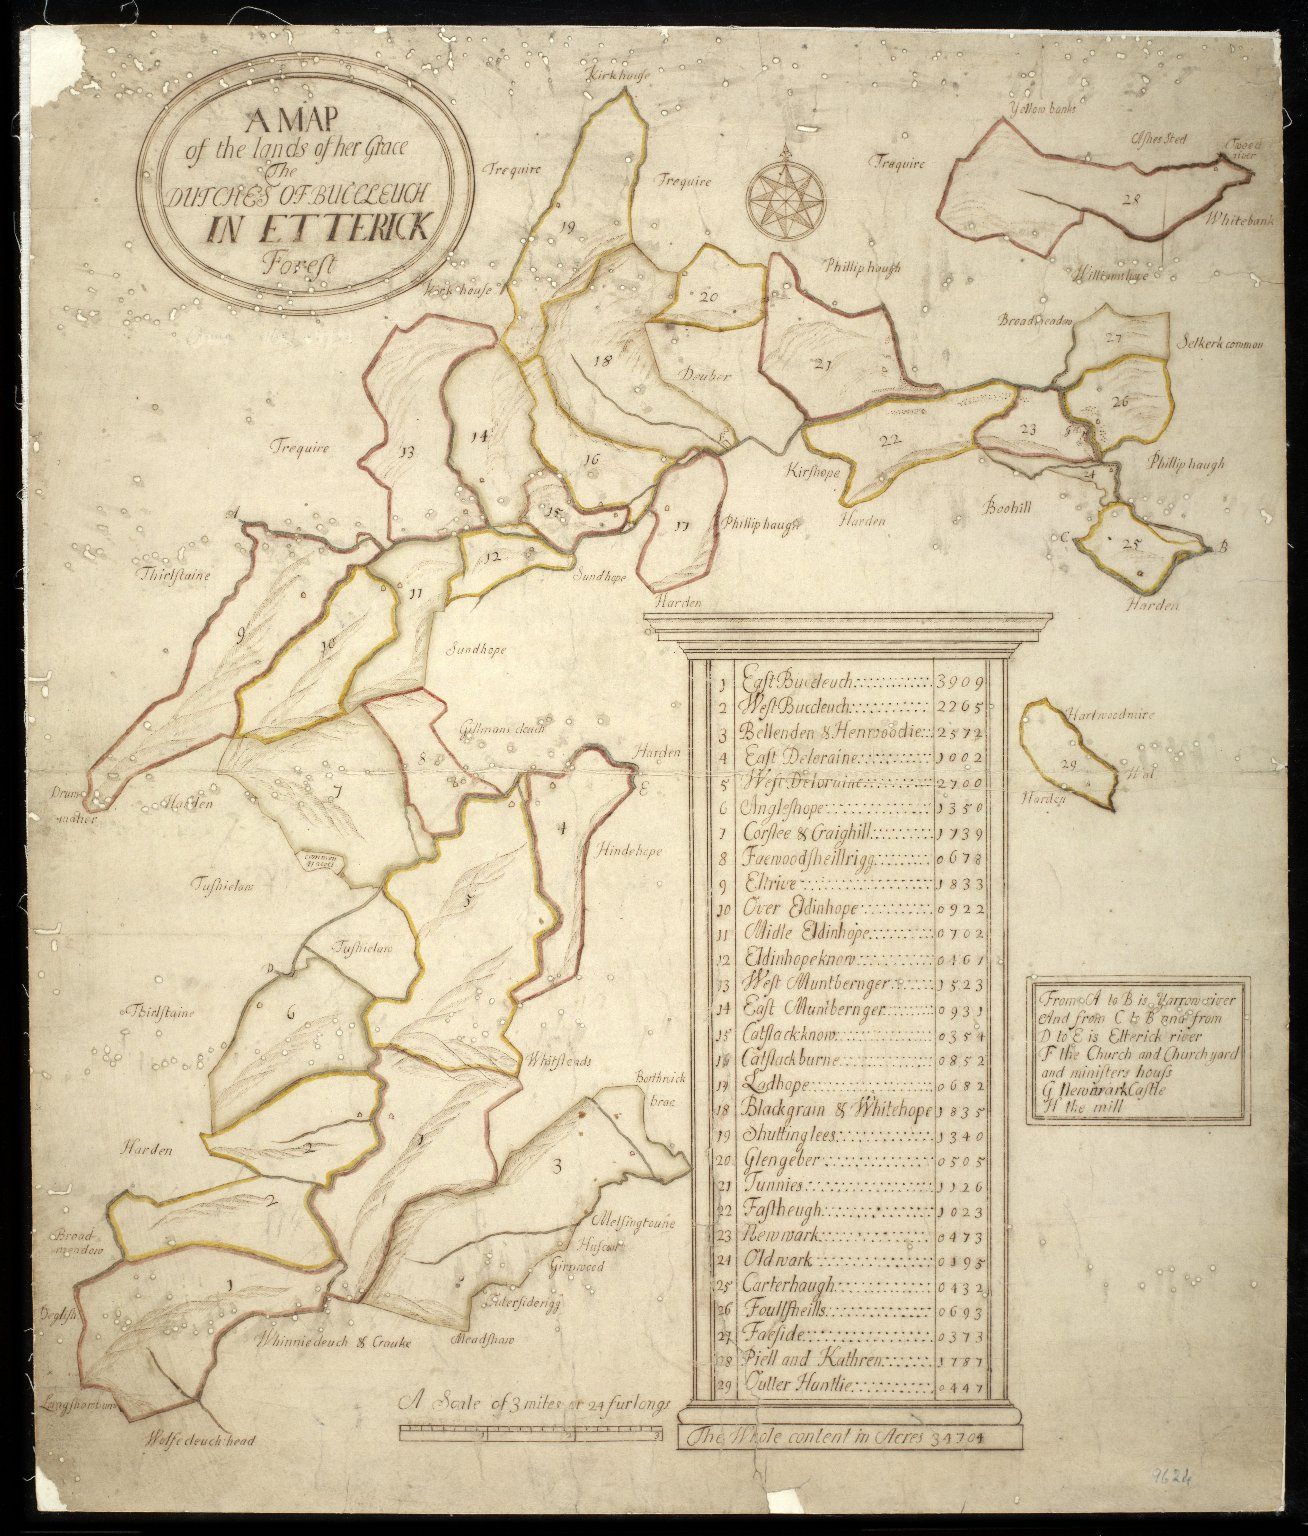 A Map of the lands of her Grace The Dutches of Buccleuch in Etterick Forest [1 of 1]